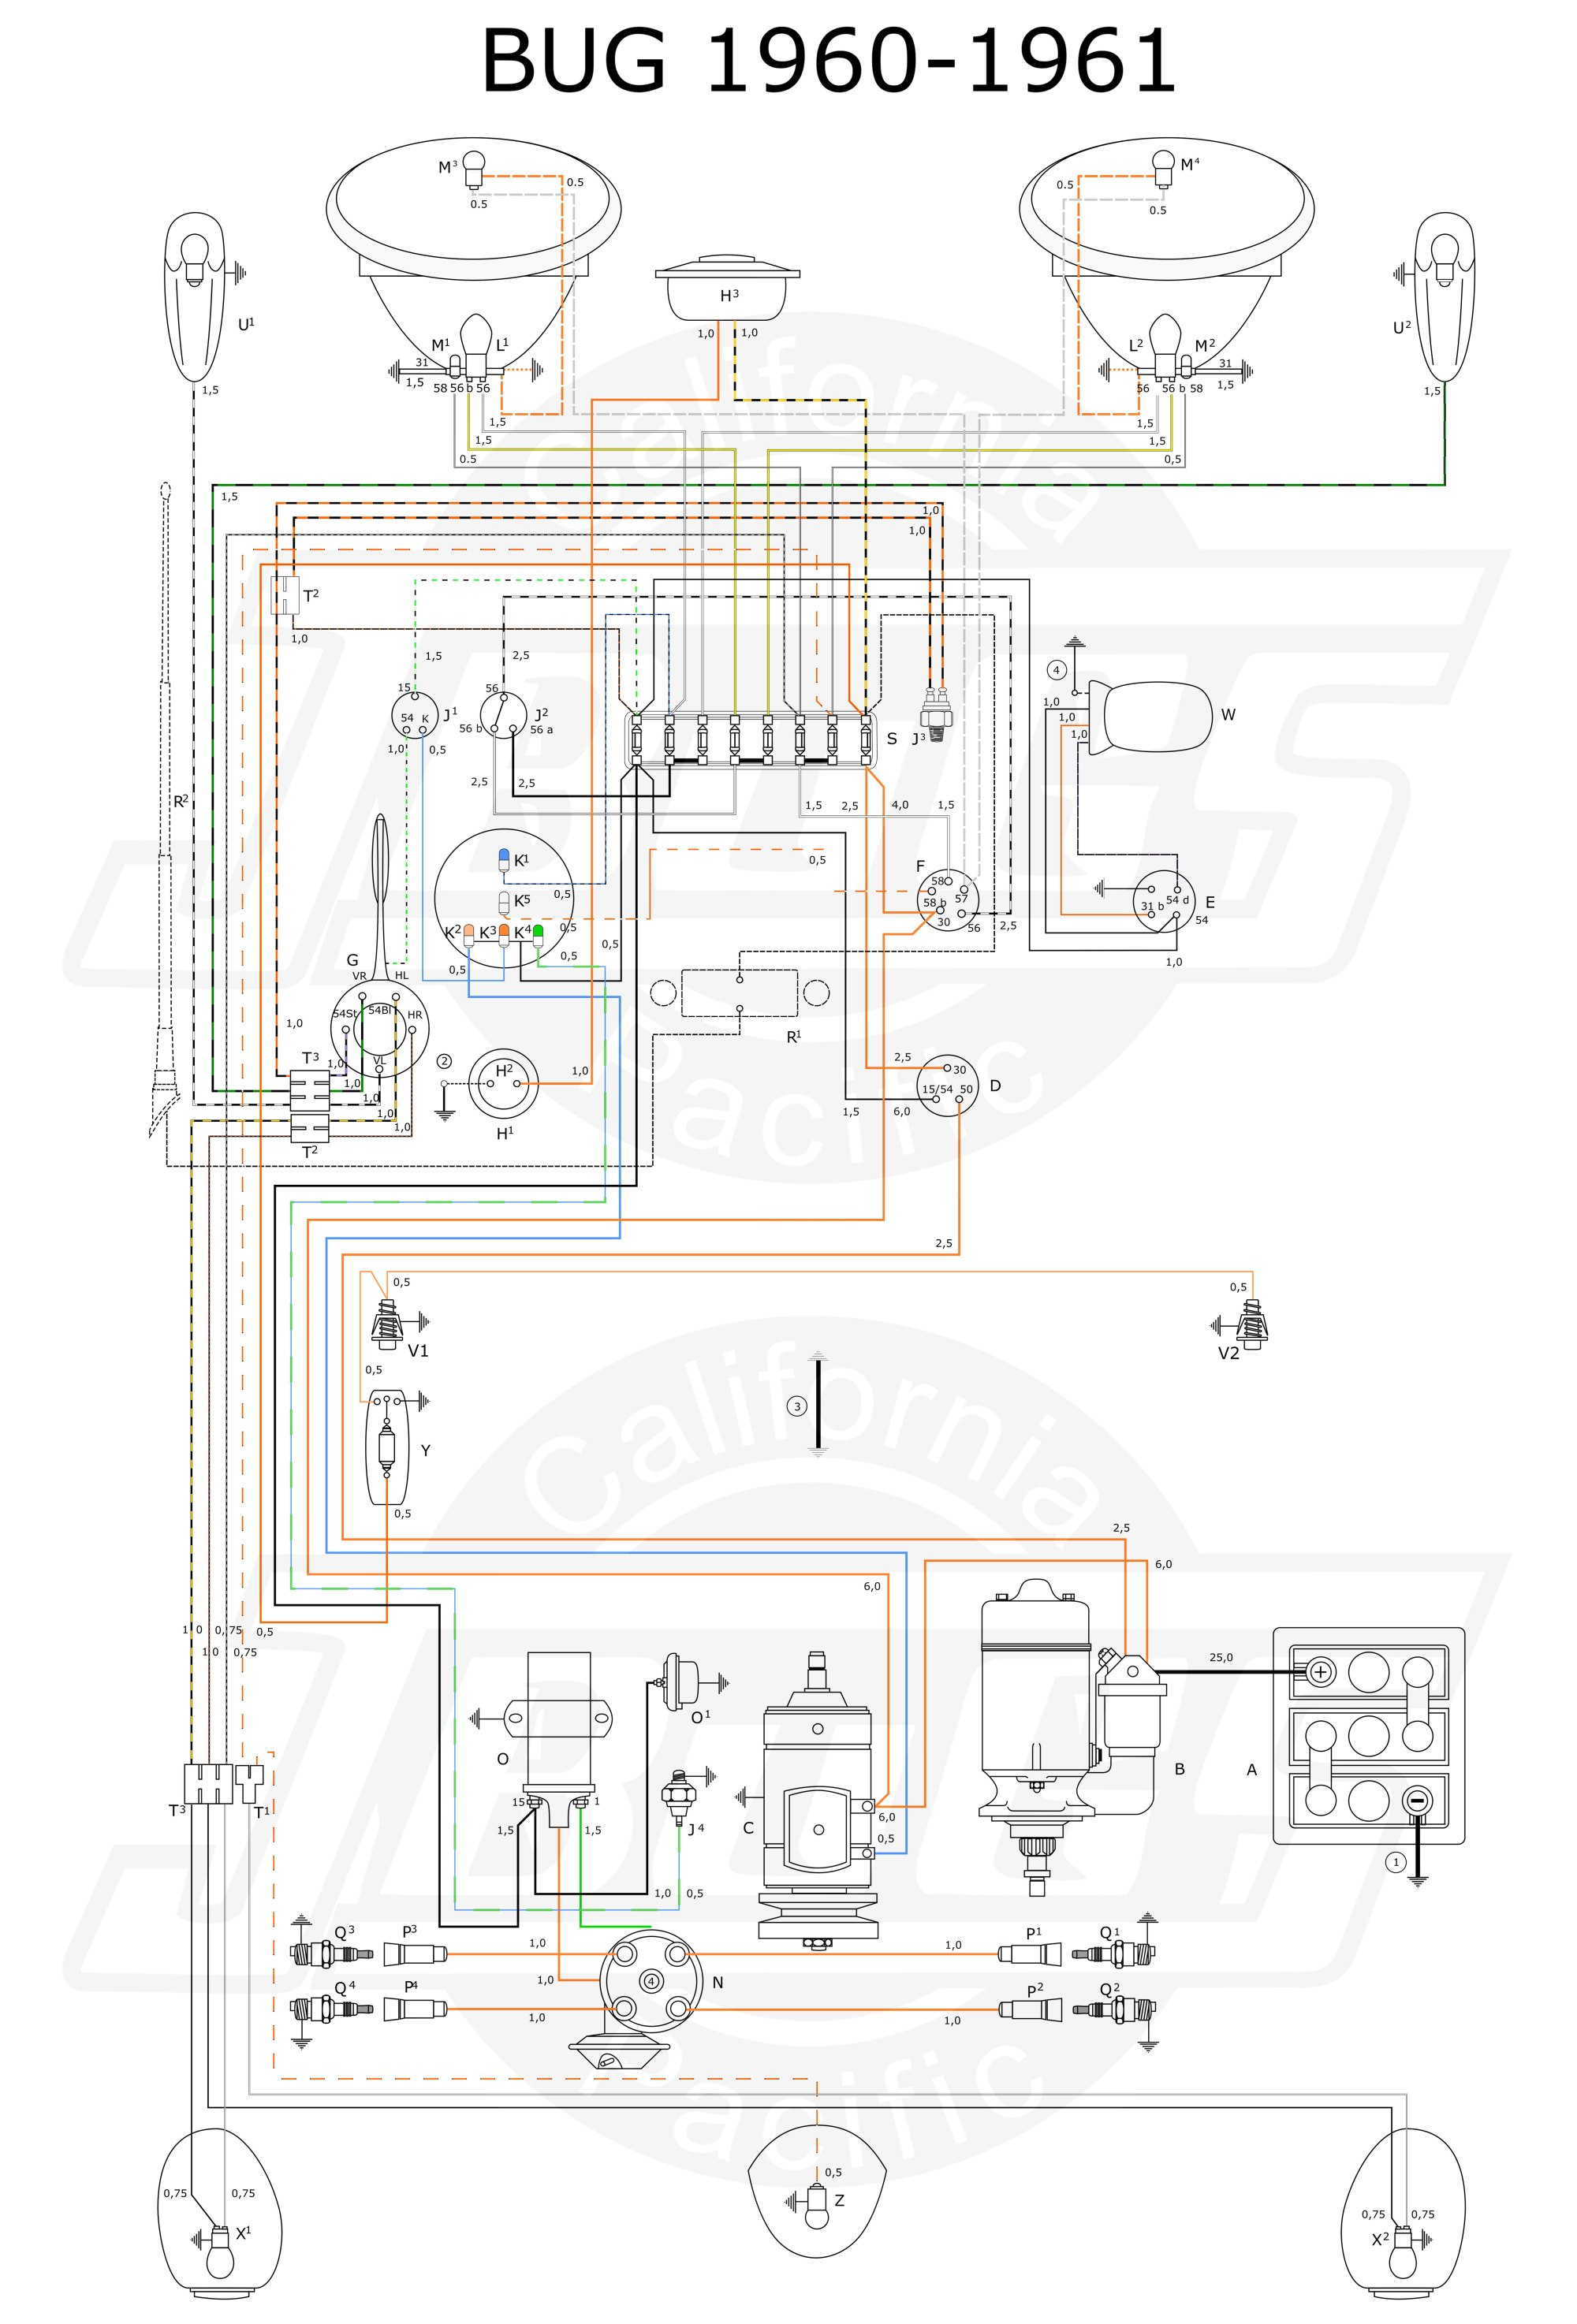 hight resolution of wrg 7916 jlg 20am wiring diagram1960 vw bug wiring experts of wiring diagram u2022 rh